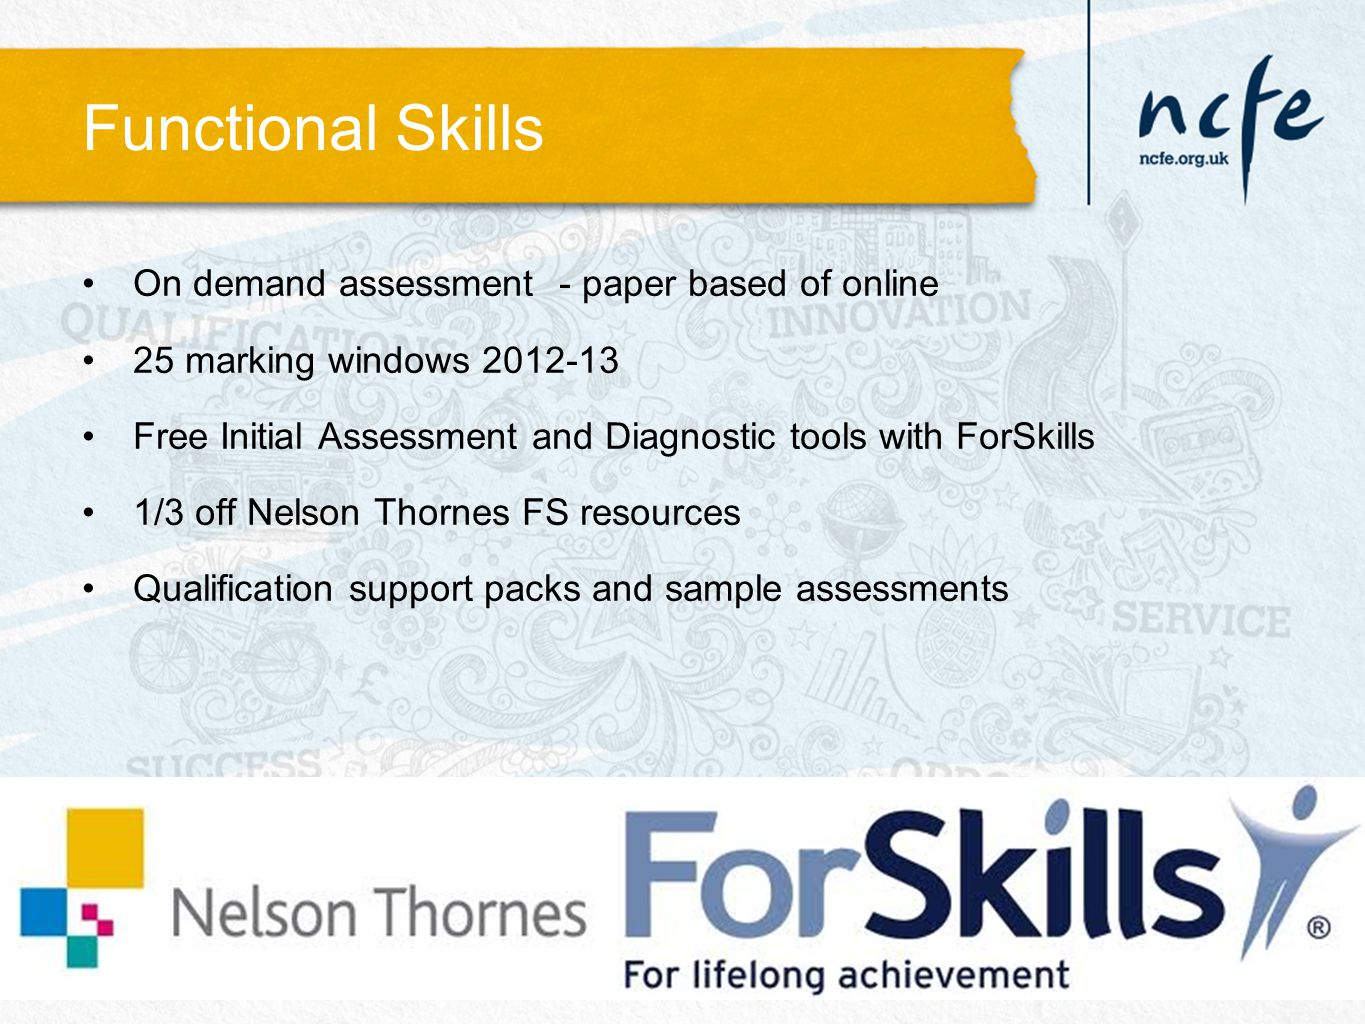 Functional Skills On demand assessment - paper based of online 25 marking windows 2012-13 Free Initial Assessment and Diagnostic tools with ForSkills